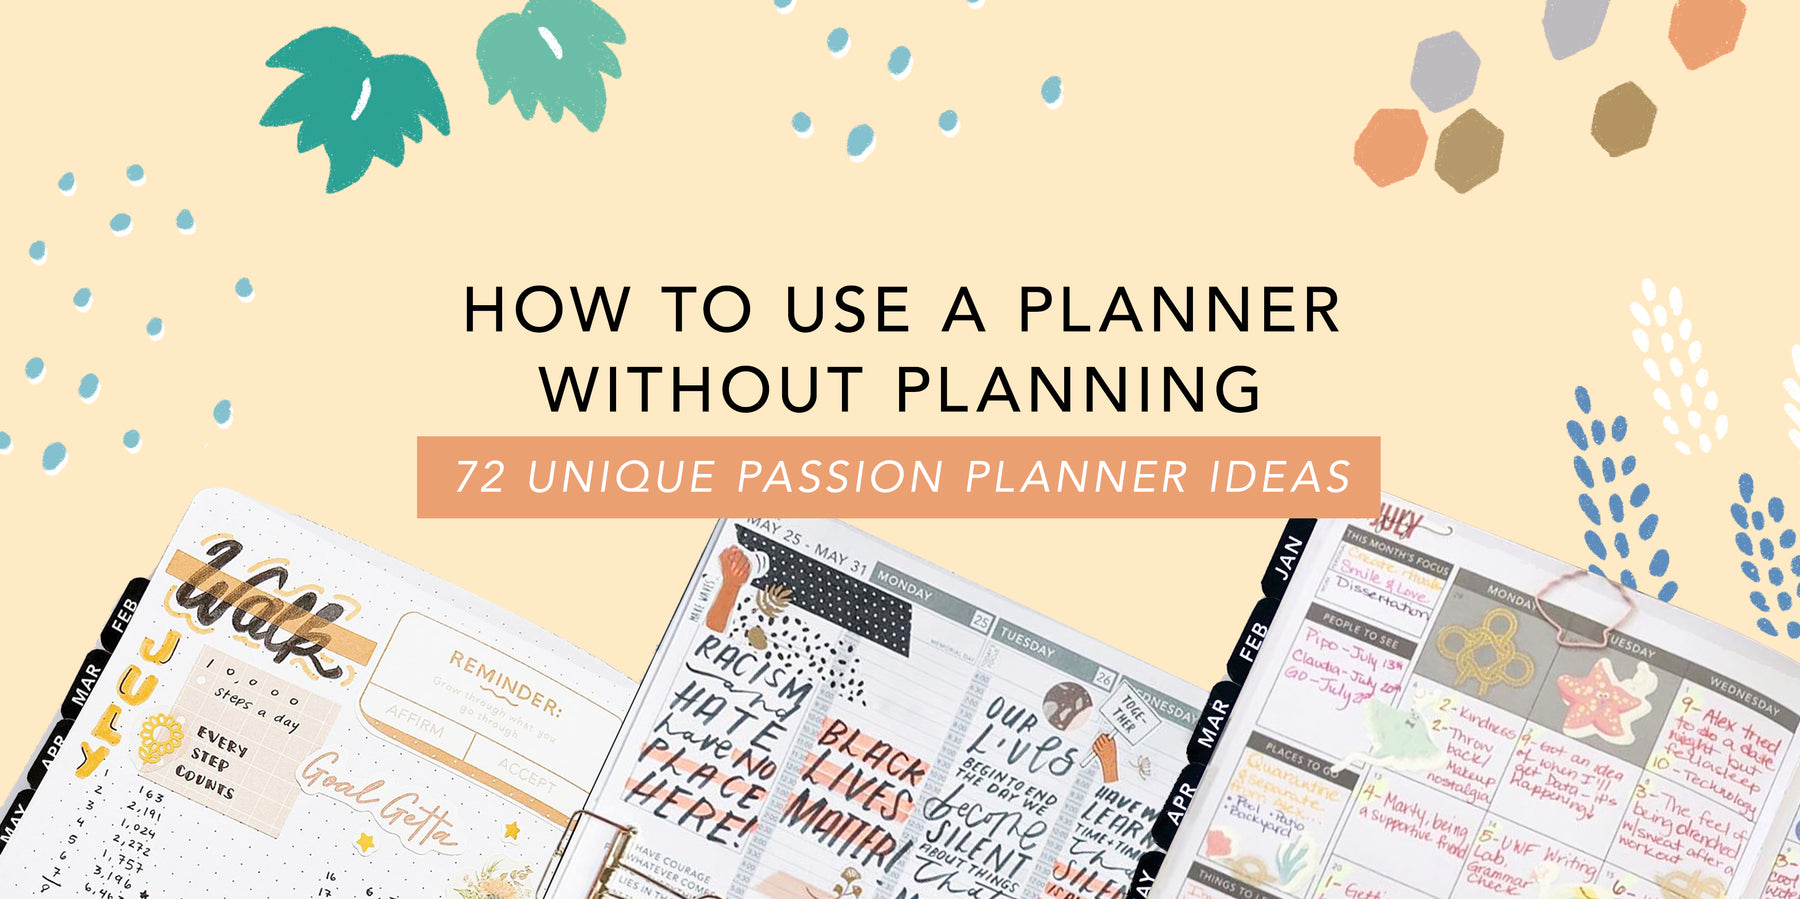 How to Use a Planner without Planning: 72 Unique Passion Planner Ideas